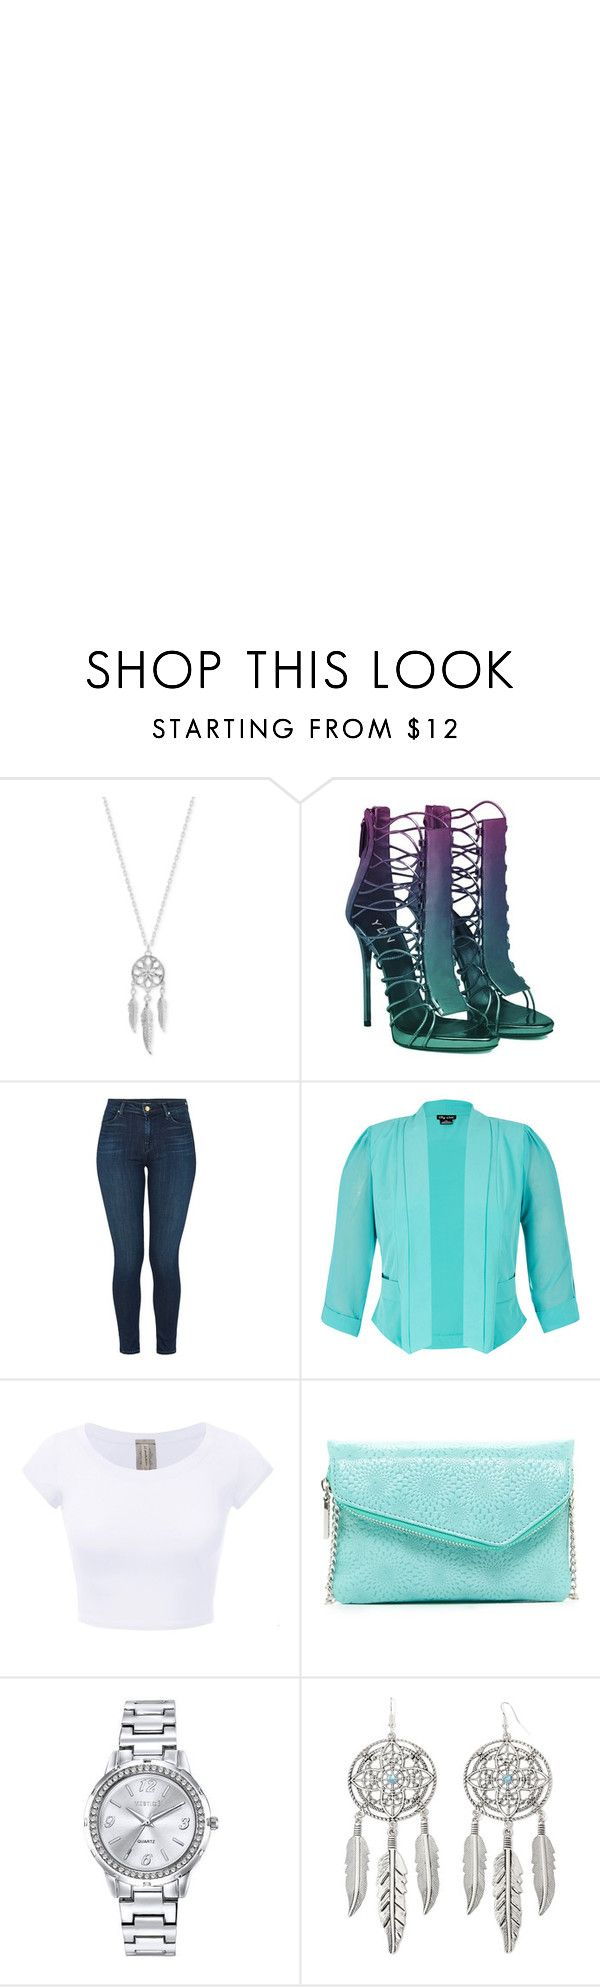 """Dream in Turquoise"" by alphashe on Polyvore featuring Lucky Brand, J Brand, City Chic, HOBO, Mestige and Arizona"